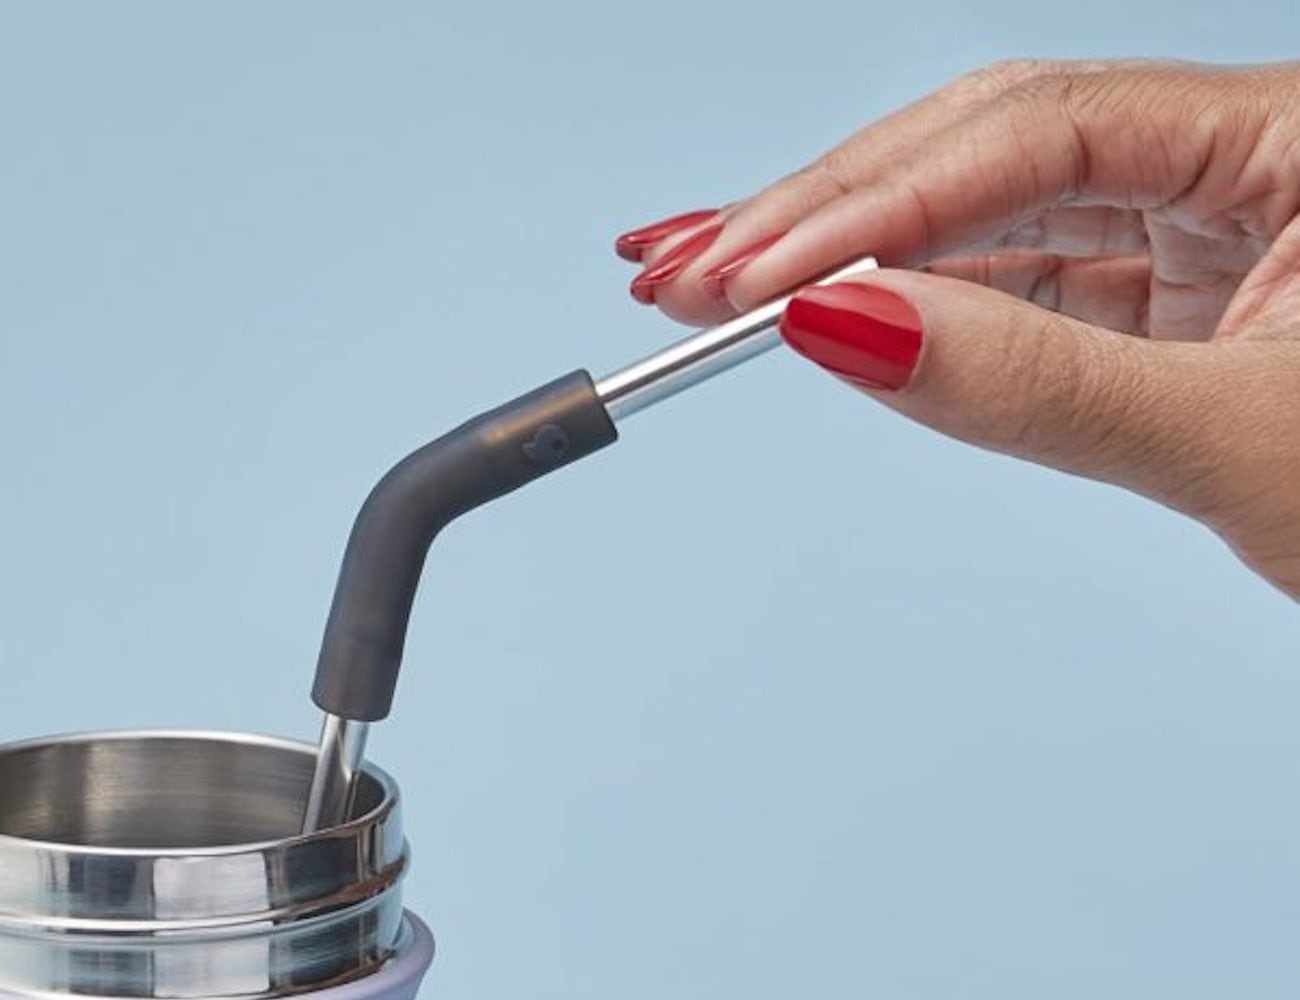 S'well Stainless Steel Straw Set eliminates the need for plastic straws